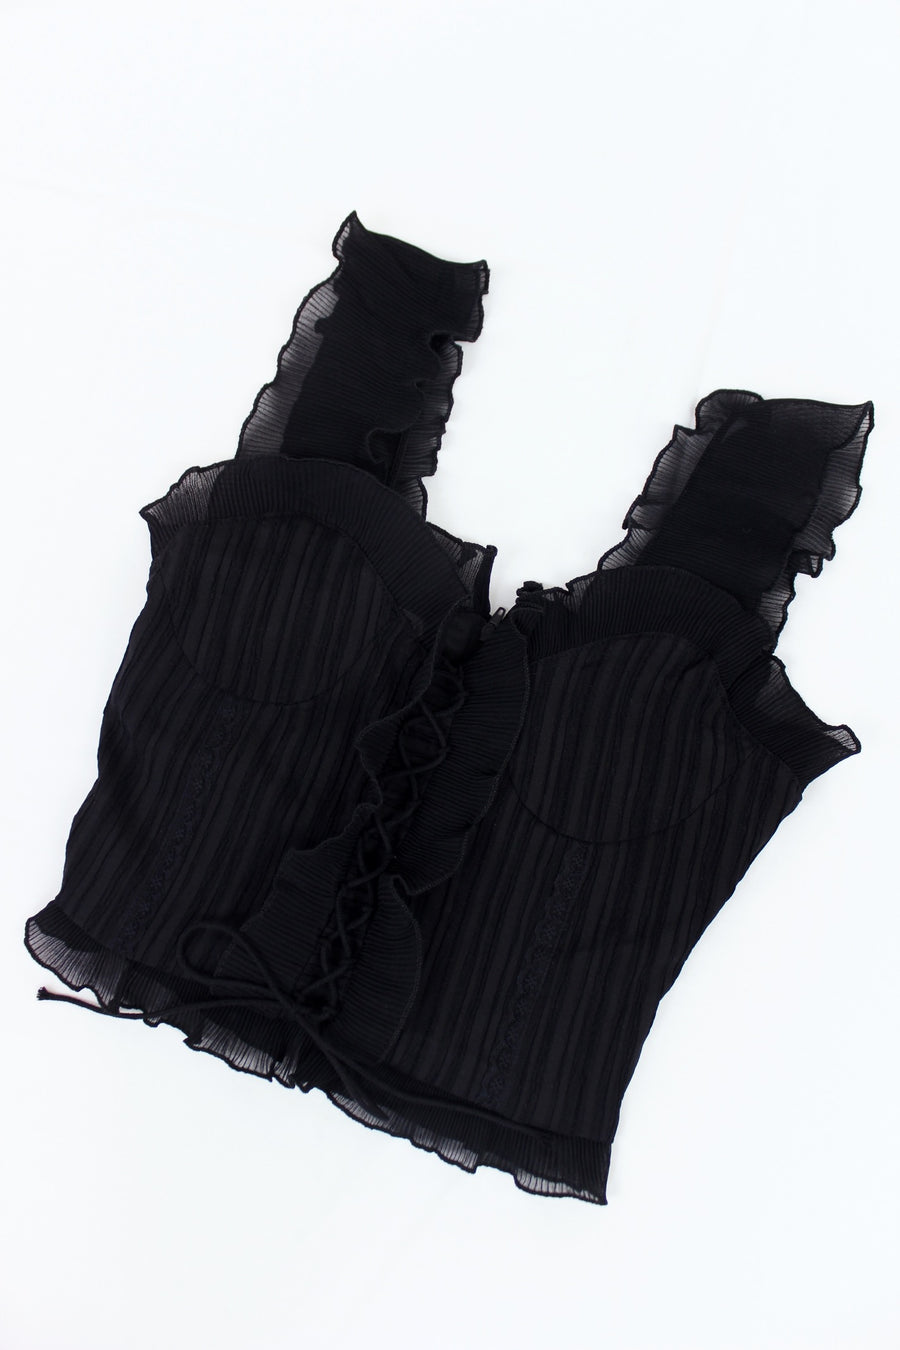 FRENCH GIRL RUFFLE TOP / BLACK - Halite Clothing